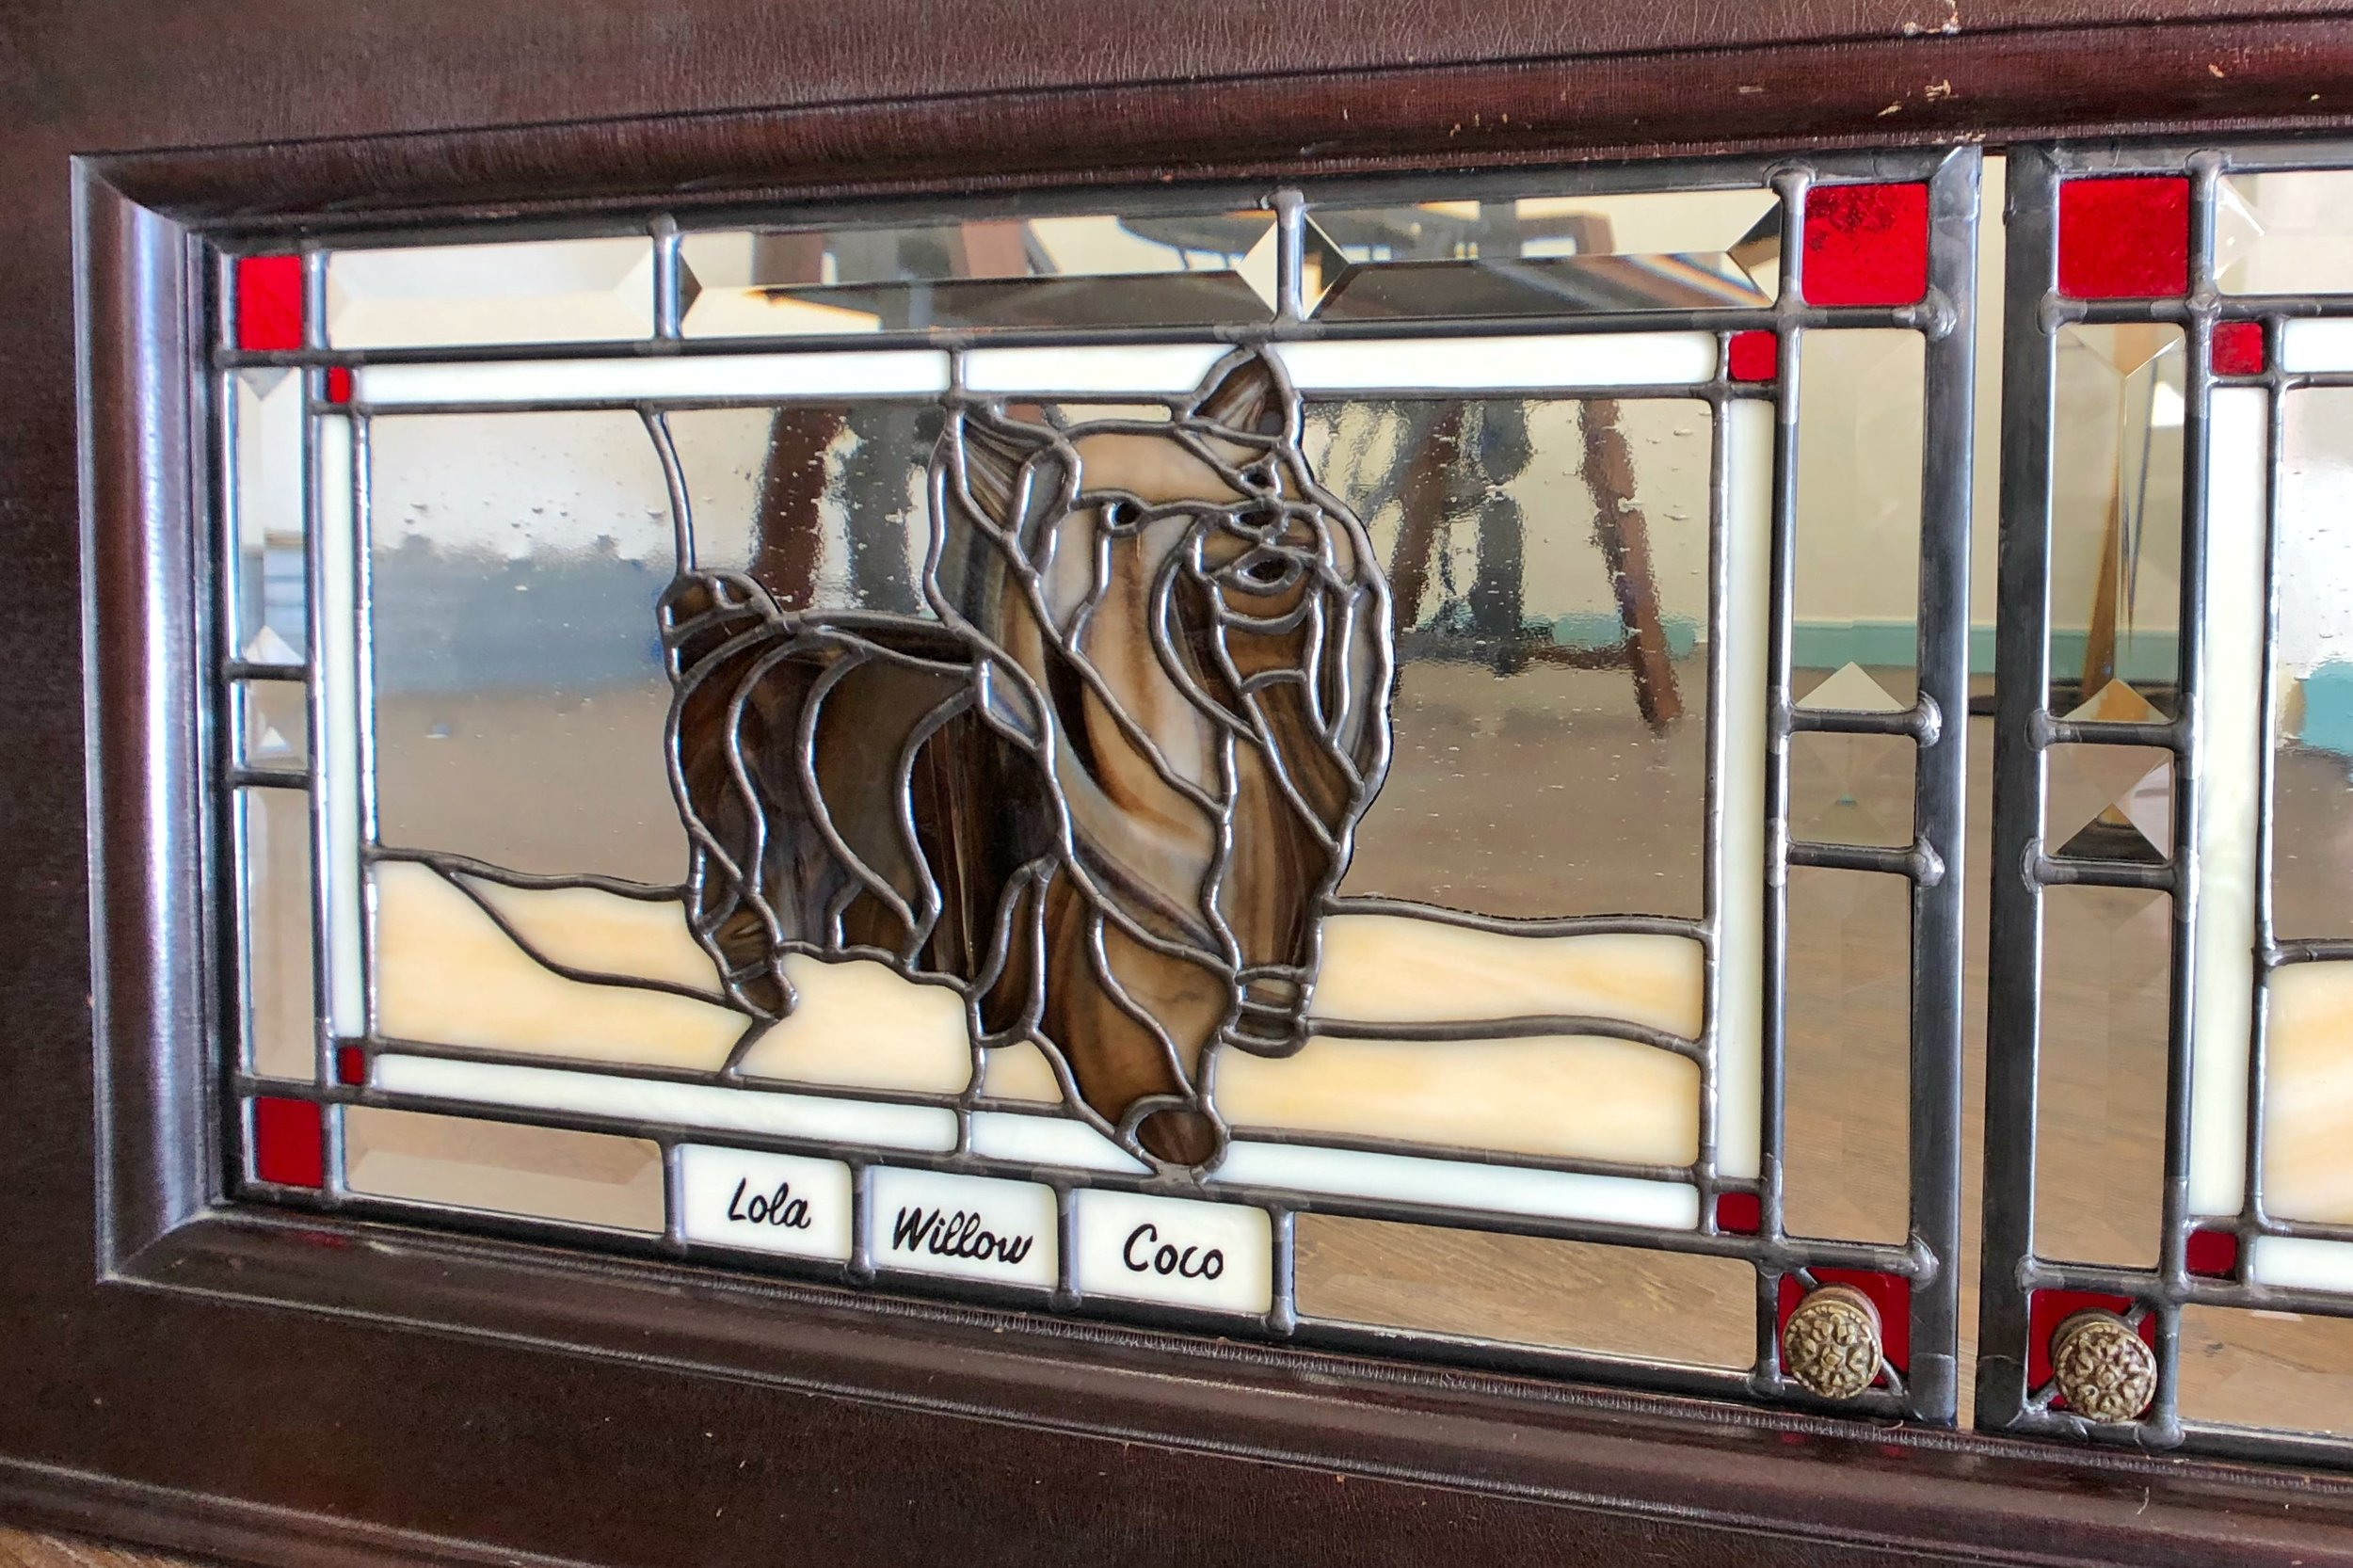 A repeat client of ours has a fun collection of restored player pianos. With these custom piano doors, she wanted to honor her SIX Yorkshire Terriers. We designed a yorkie with the 6 initials hidden in the puppy pieces, and also custom-painted 6 name-plates for her leaded glass piano doors. (See the full design on the Nature Scenes tab.)